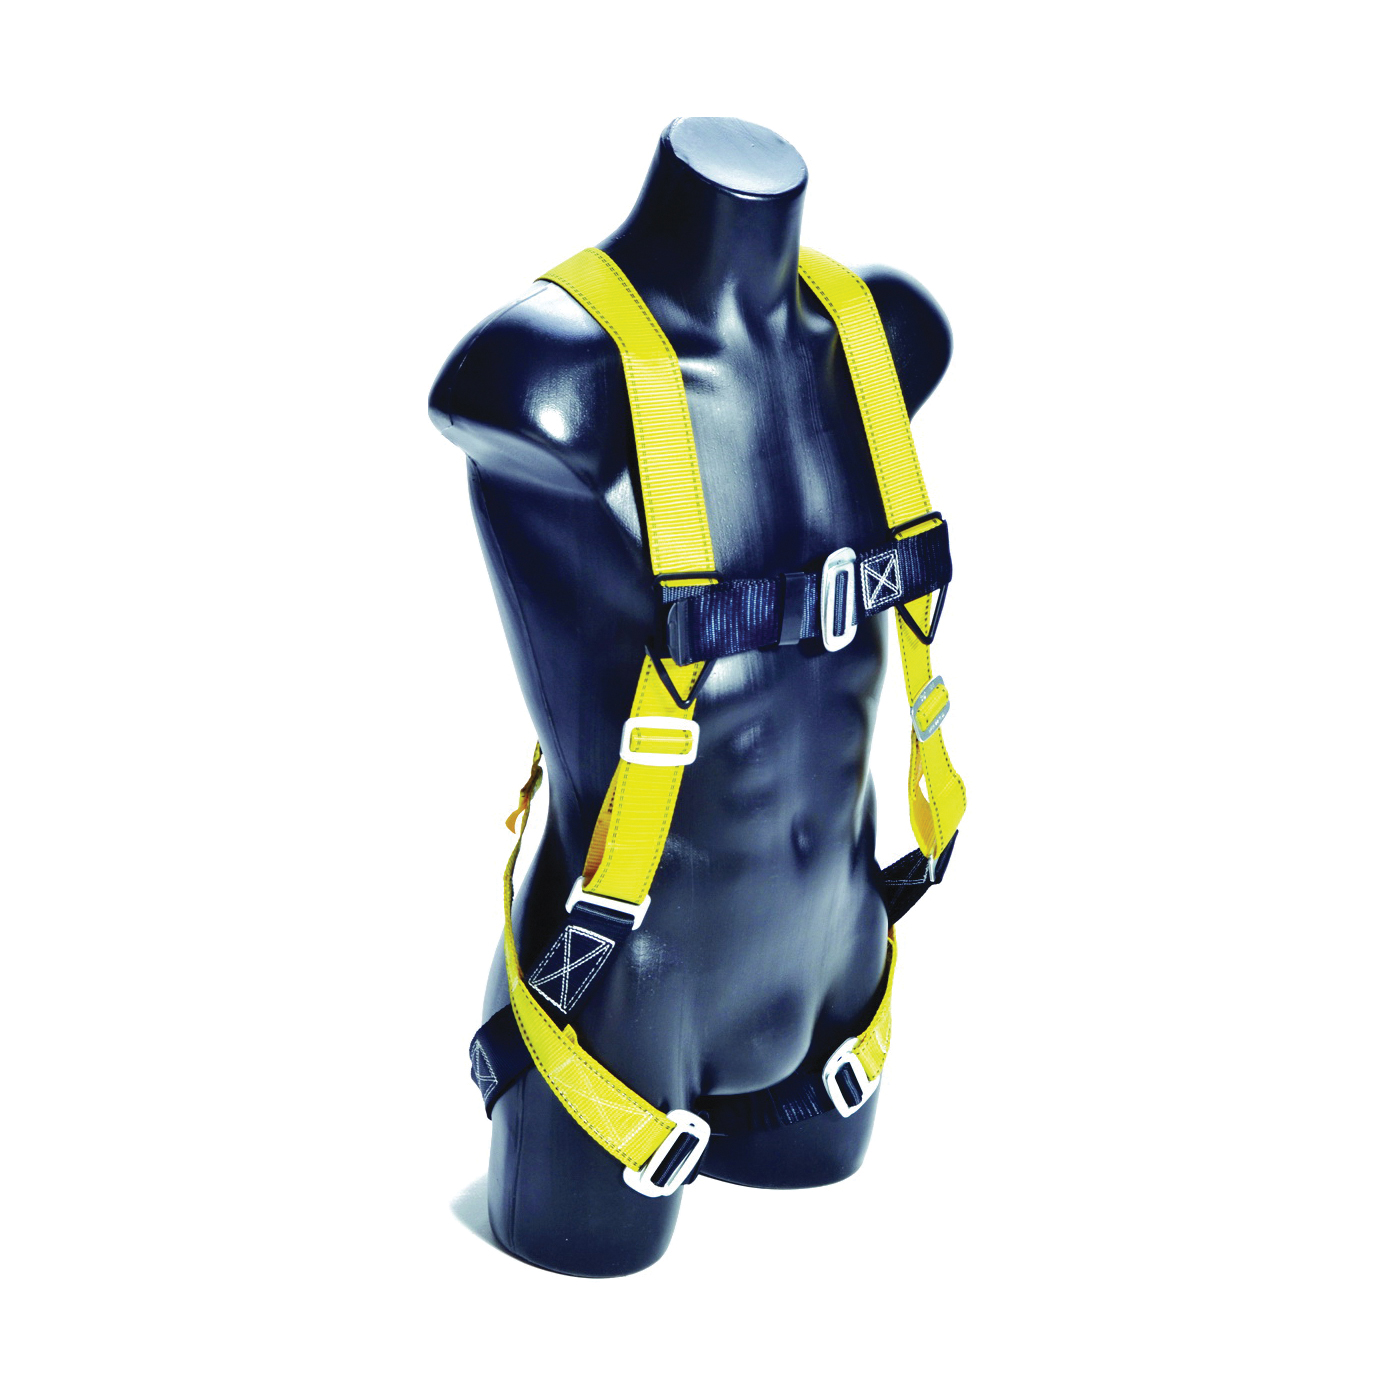 Picture of Qualcraft 01704 HUV Harness, XL/2XL, 180 to 360 lb